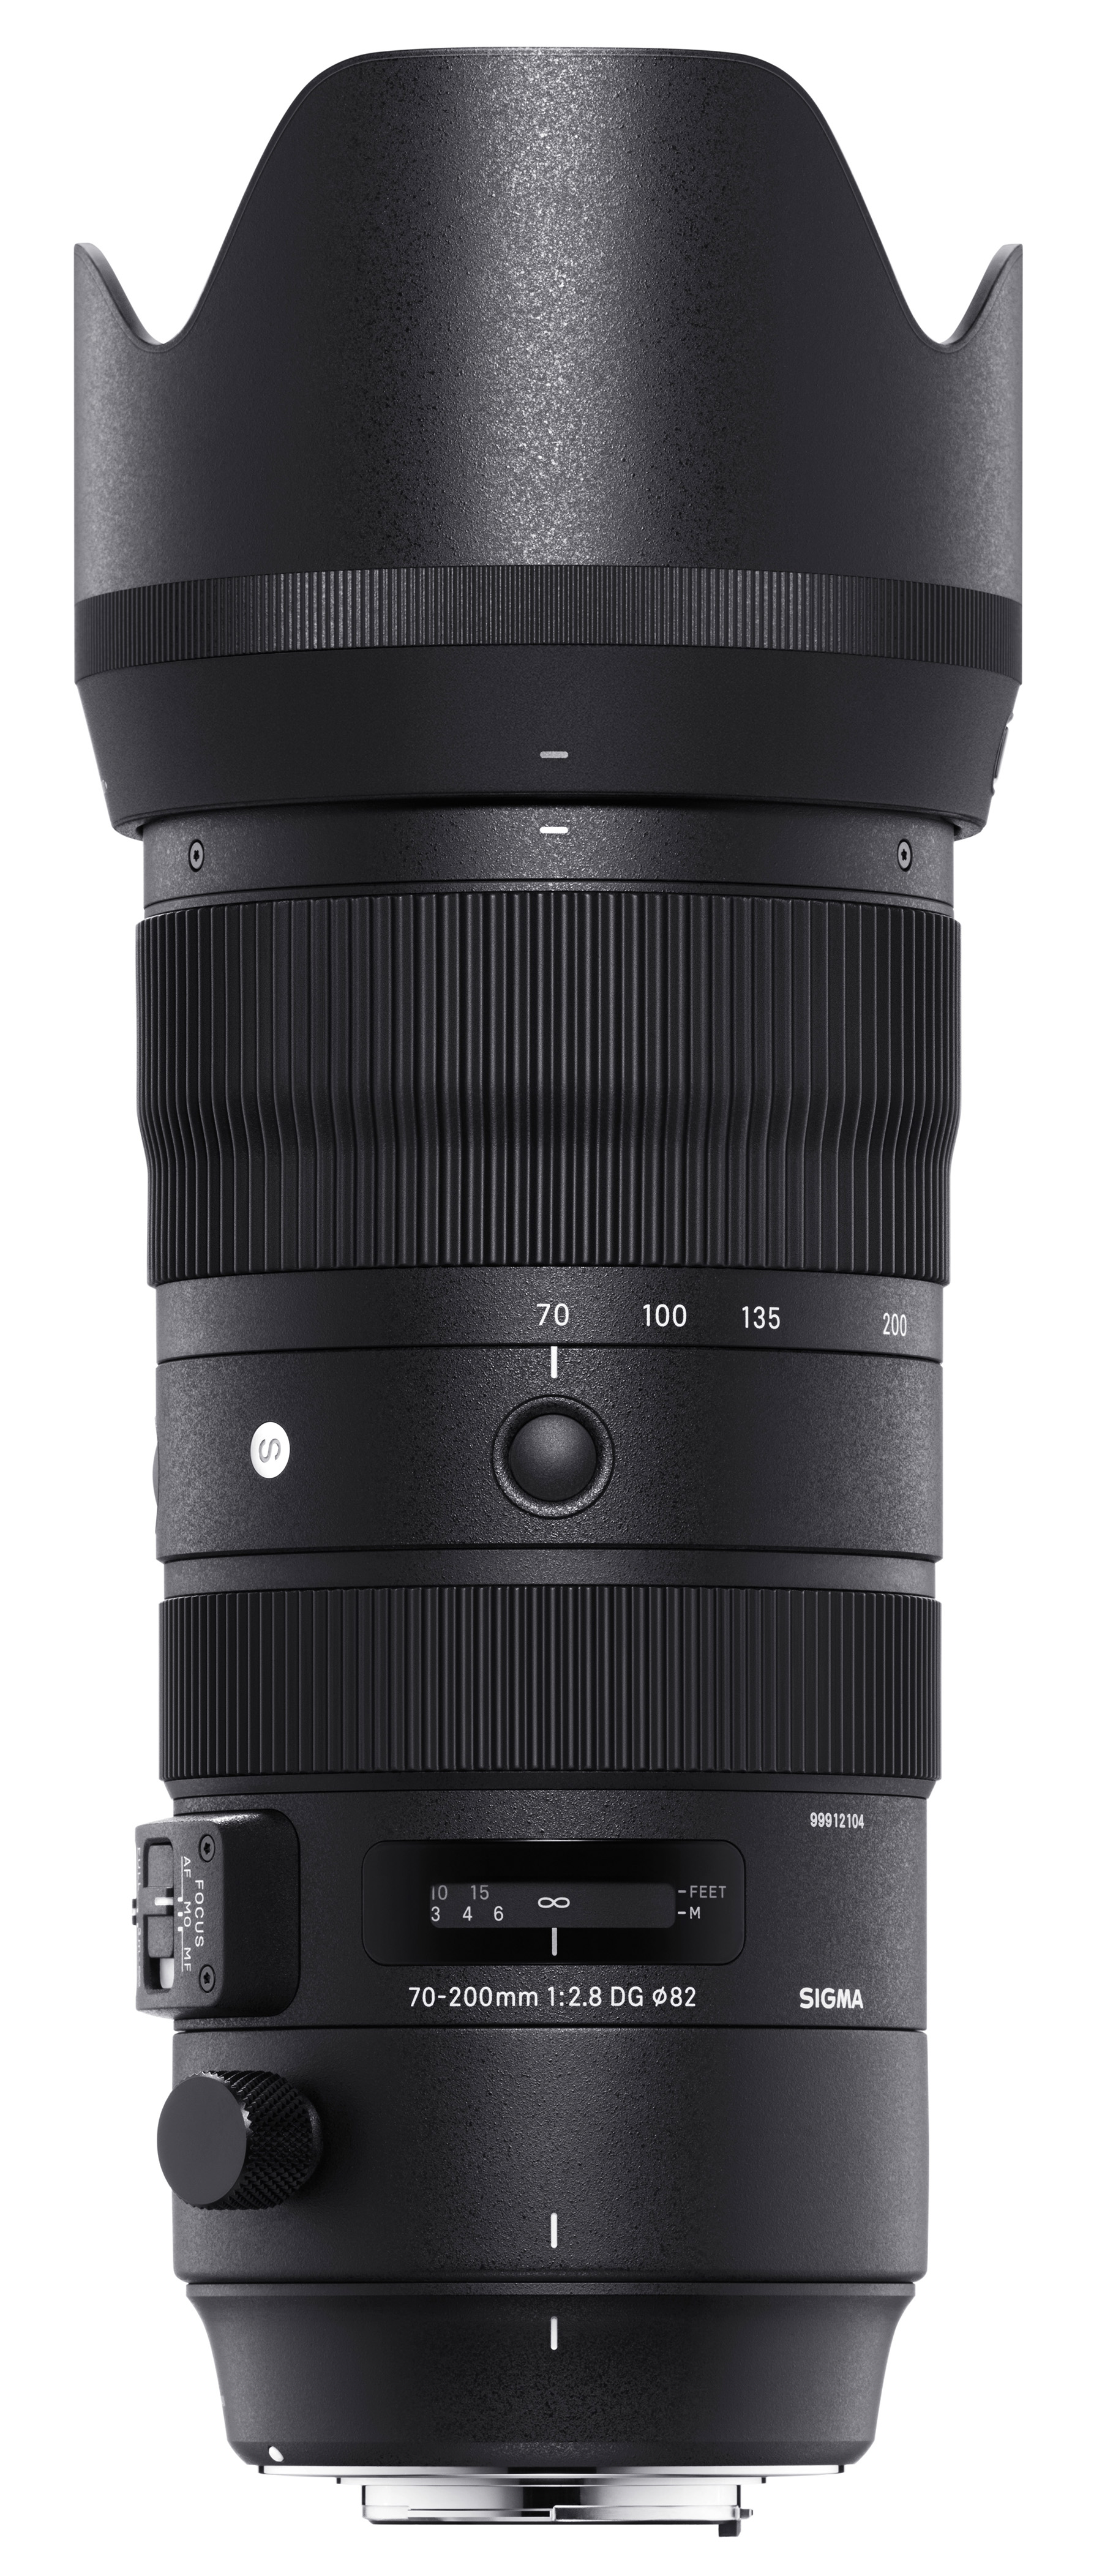 Produktabbildung 70-200mm F2,8 DG OS HSM | Sports